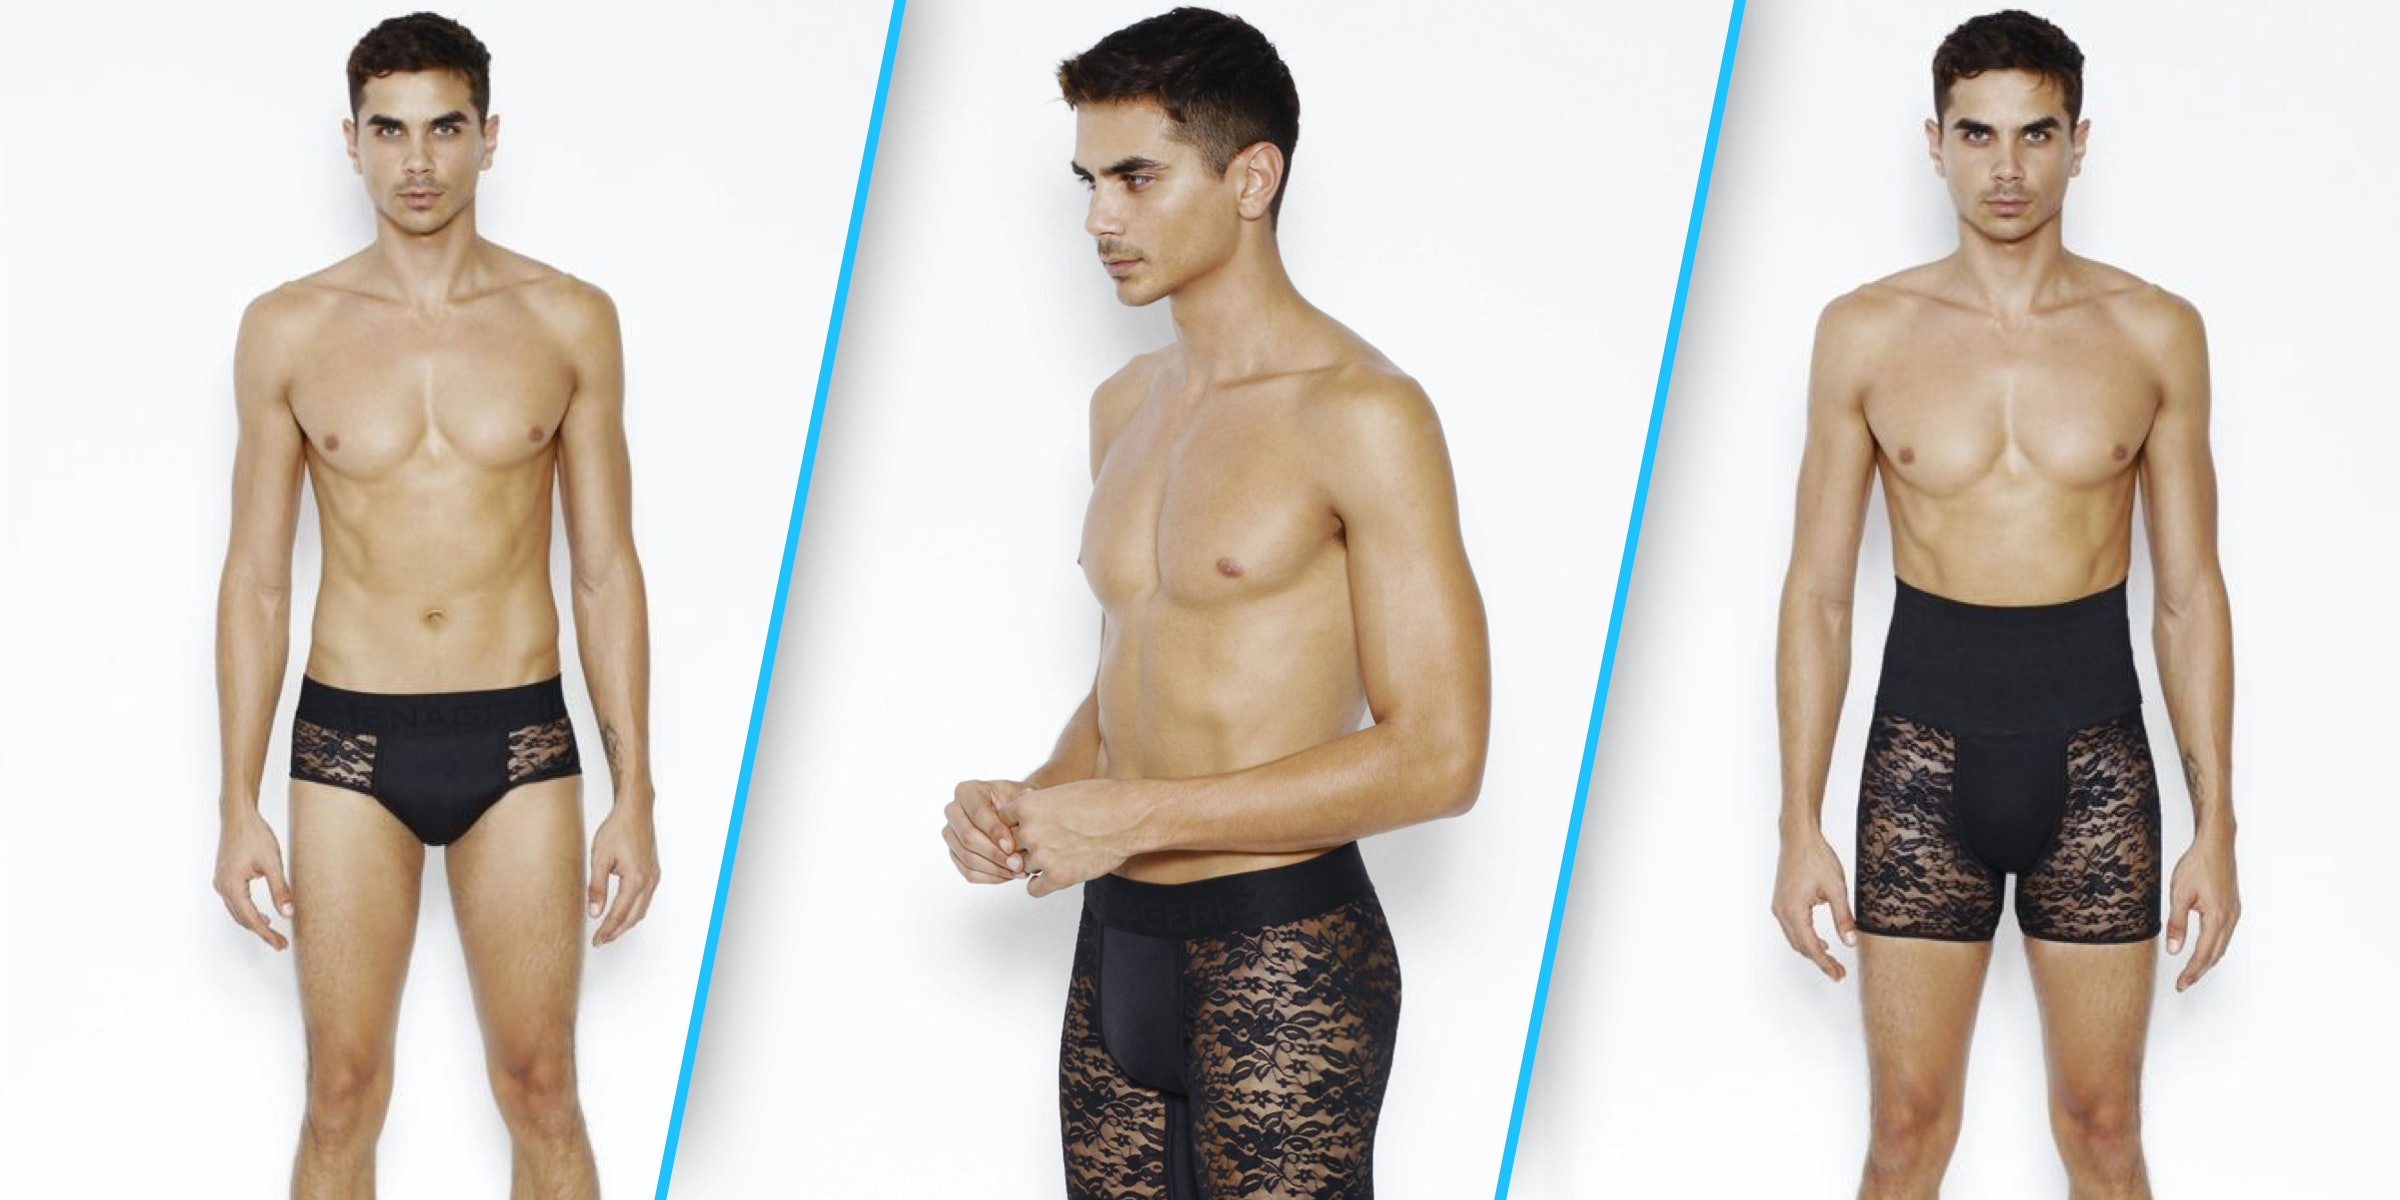 ef2aae53b3a7 At Long Last, Lingerie For Men Now Exists. So Take That, Victoria's Secret.